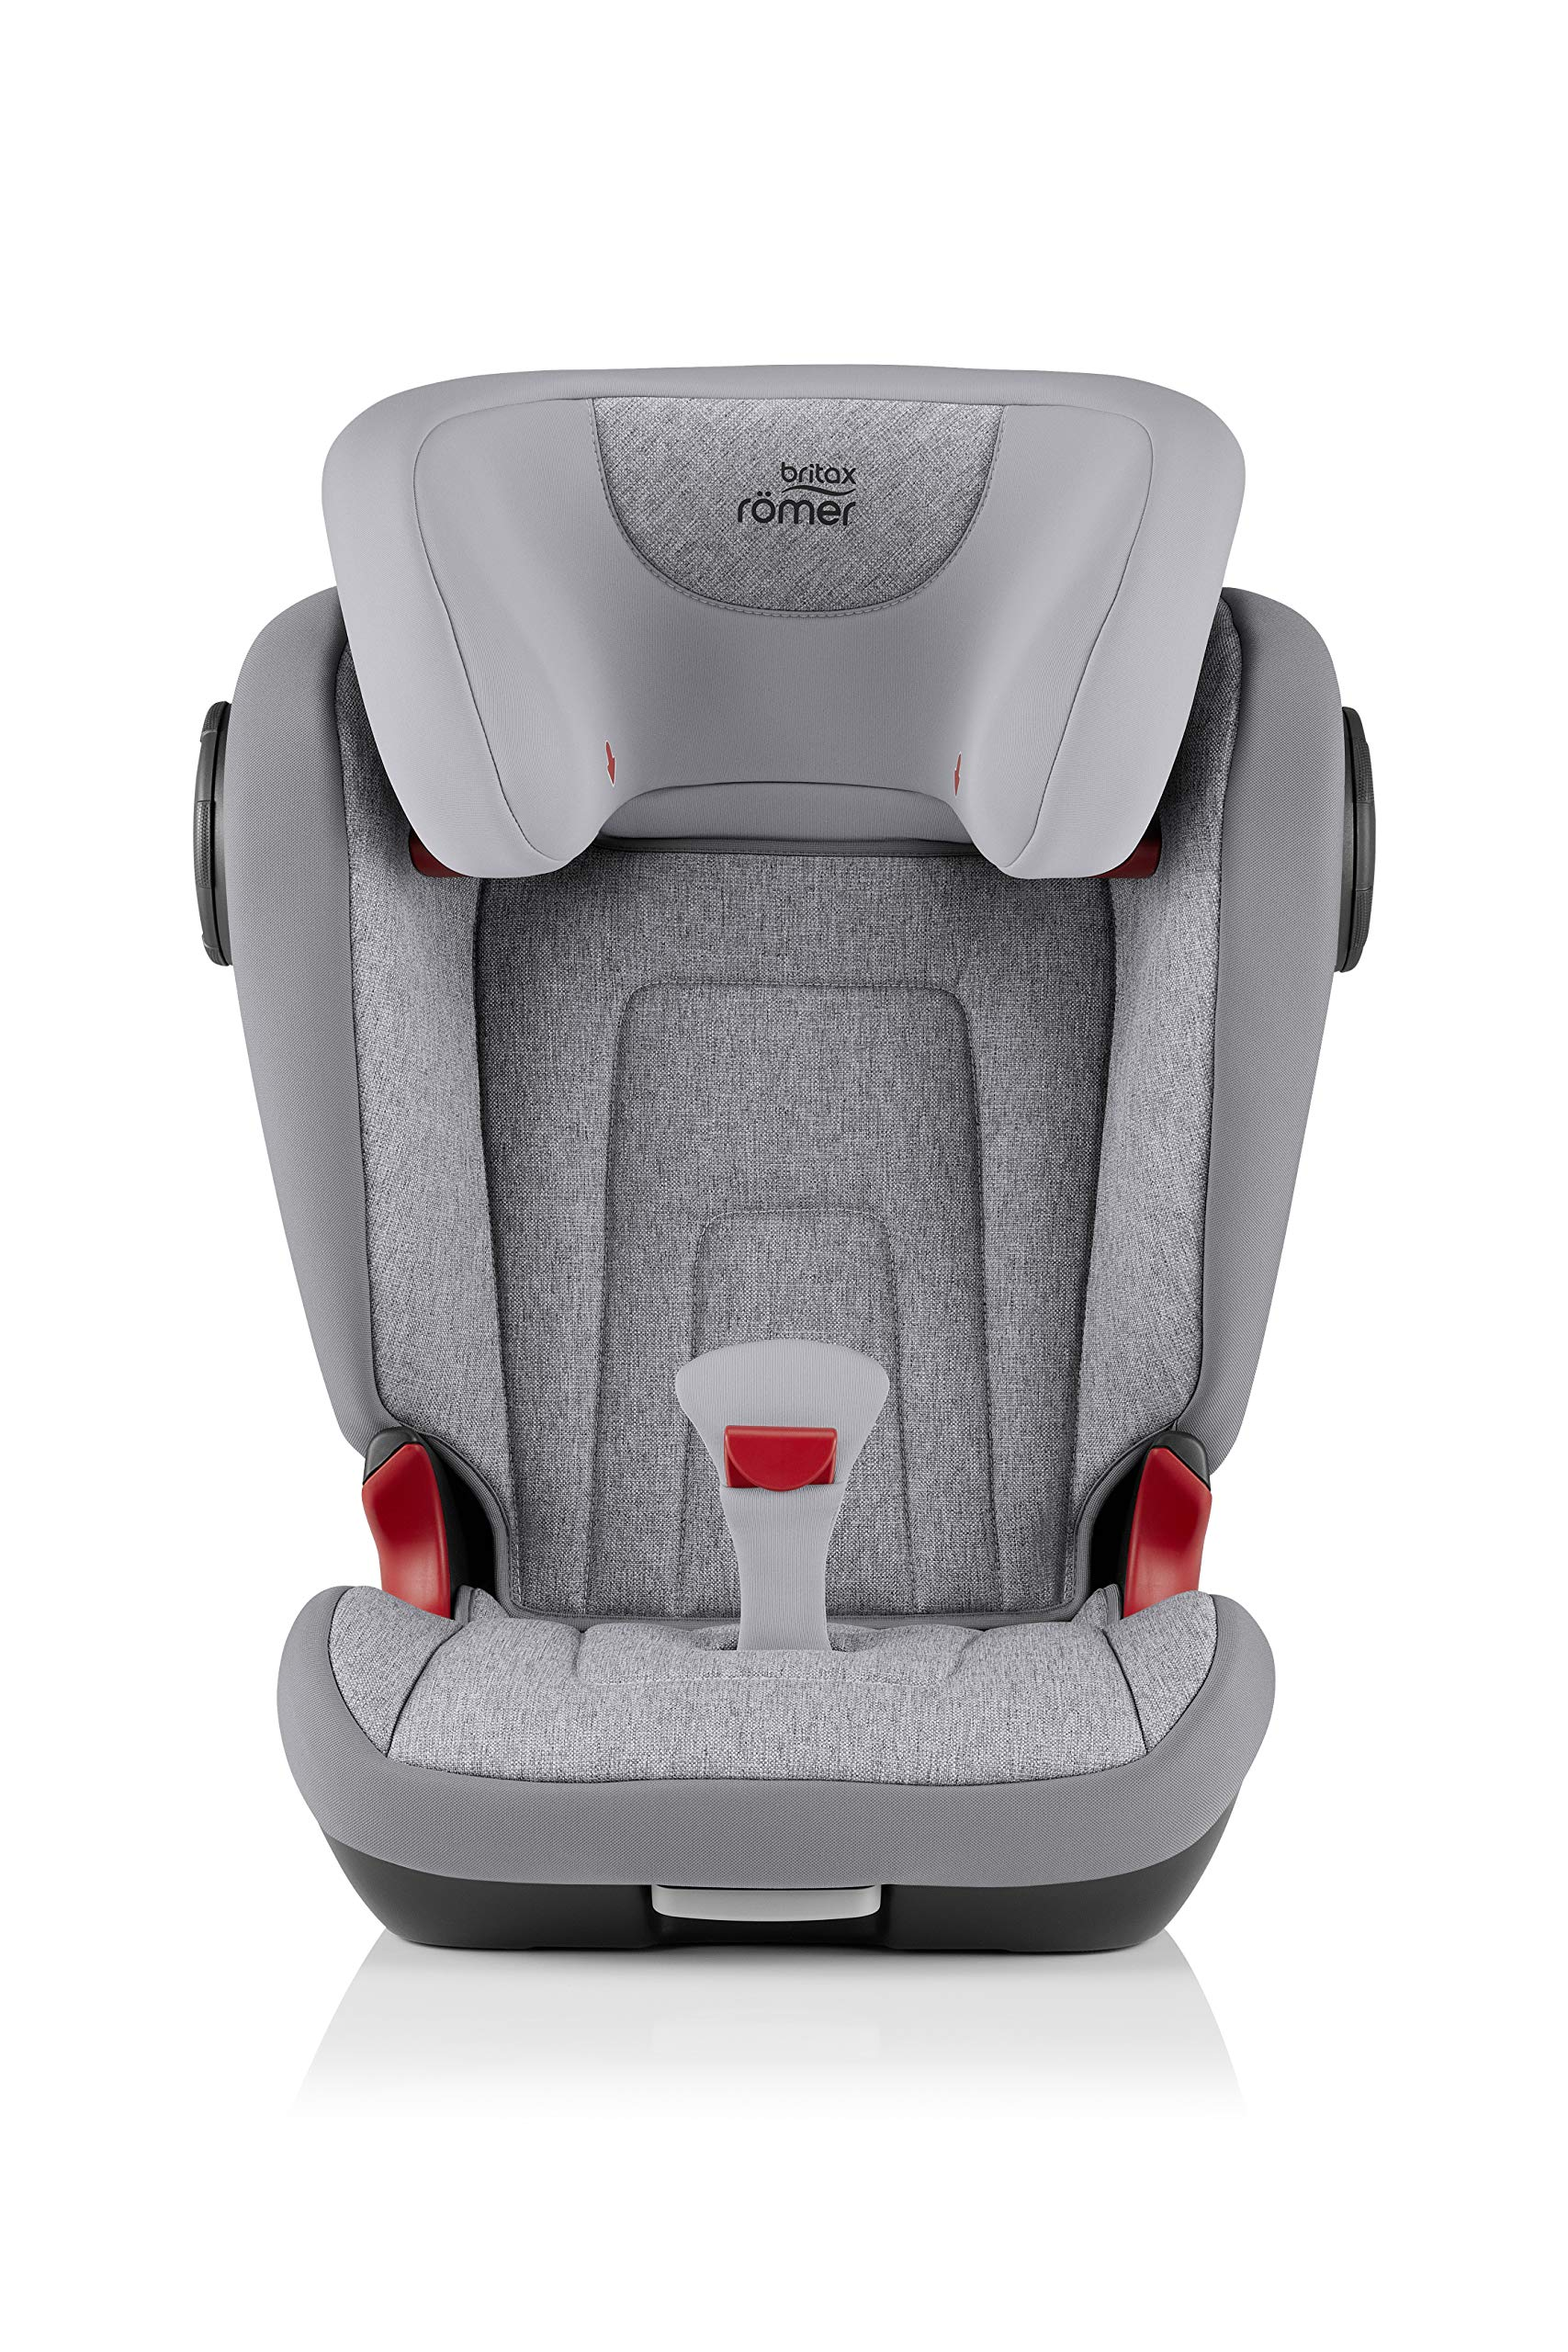 Britax Römer KIDFIX² S Group 2-3 (15-36kg) Car Seat - Grey Marble  Advanced side impact protection - sict offers superior protection to your child in the event of a side collision. reducing impact forces by minimising the distance between the car and the car seat. Secure guard - helps to protect your child's delicate abdominal area by adding an extra - a 4th - contact point to the 3-point seat belt. High back booster - protects your child in 3 ways: provides head to hip protection; belt guides provide correct positioning of the seat belt and the padded headrest provides safety and comfort. 2